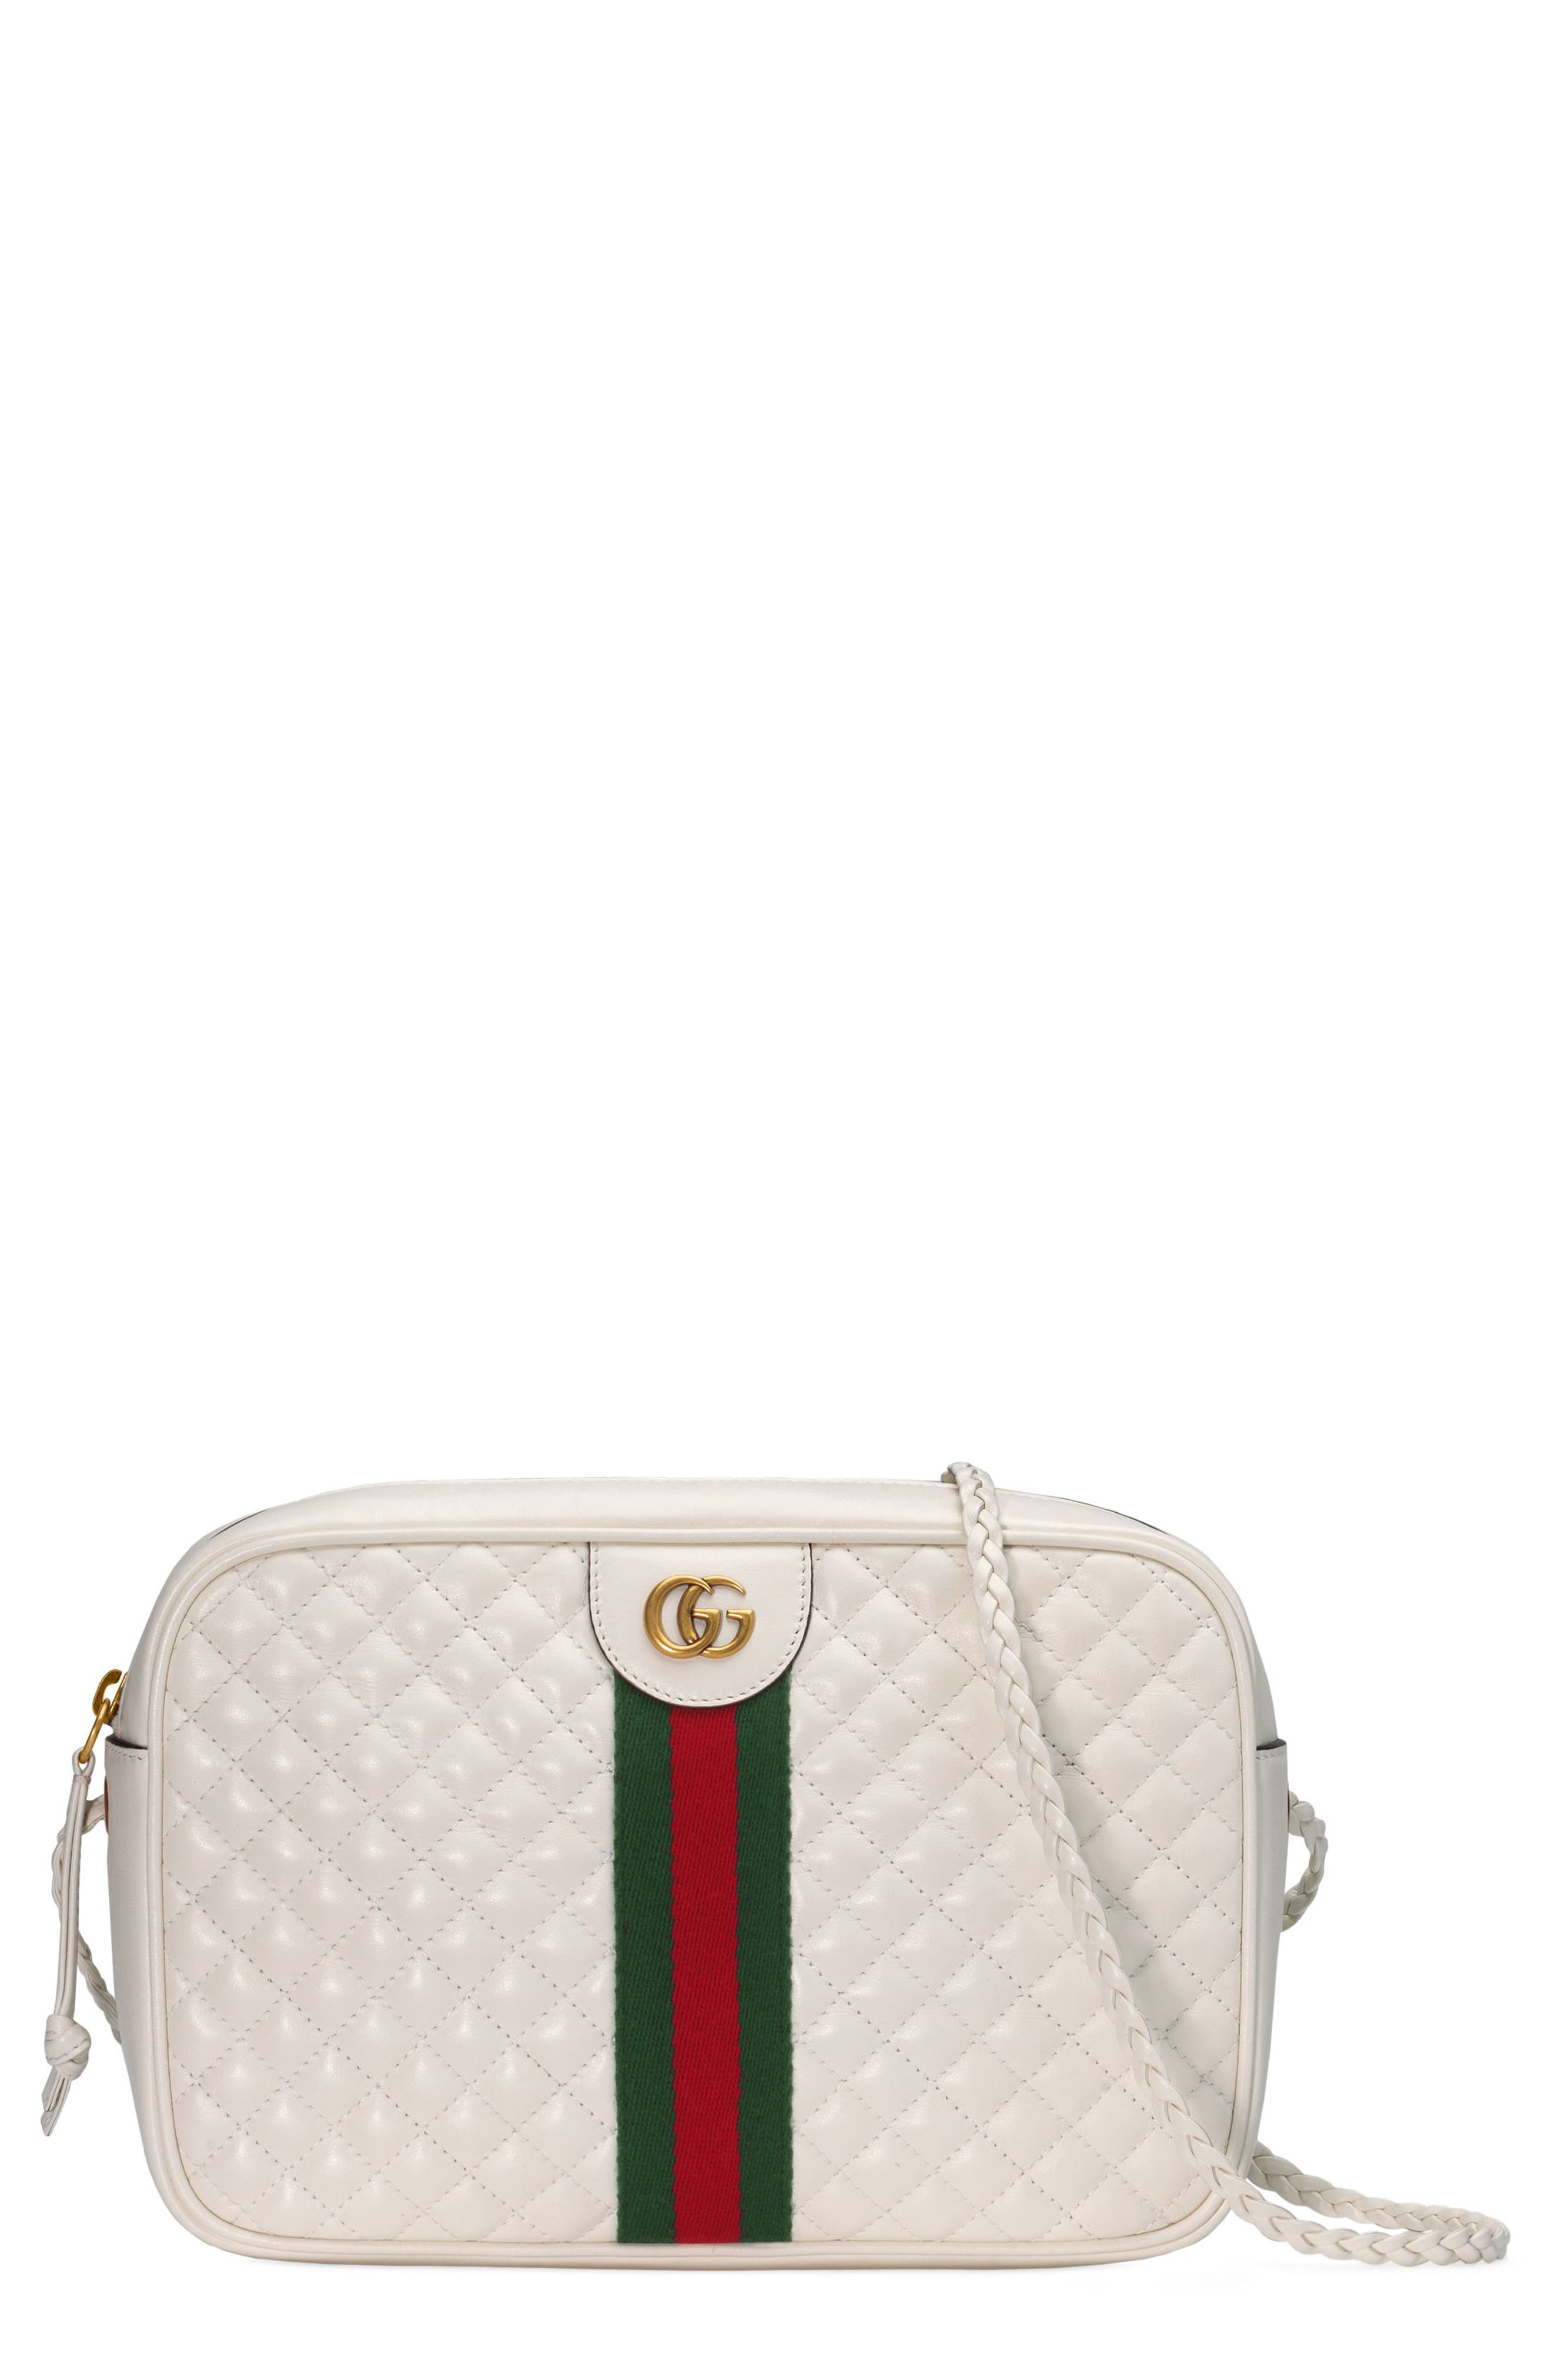 Small Quilted Leather Camera Bag,                         Main,                         color, OFF WHITE/ VERT/ RED